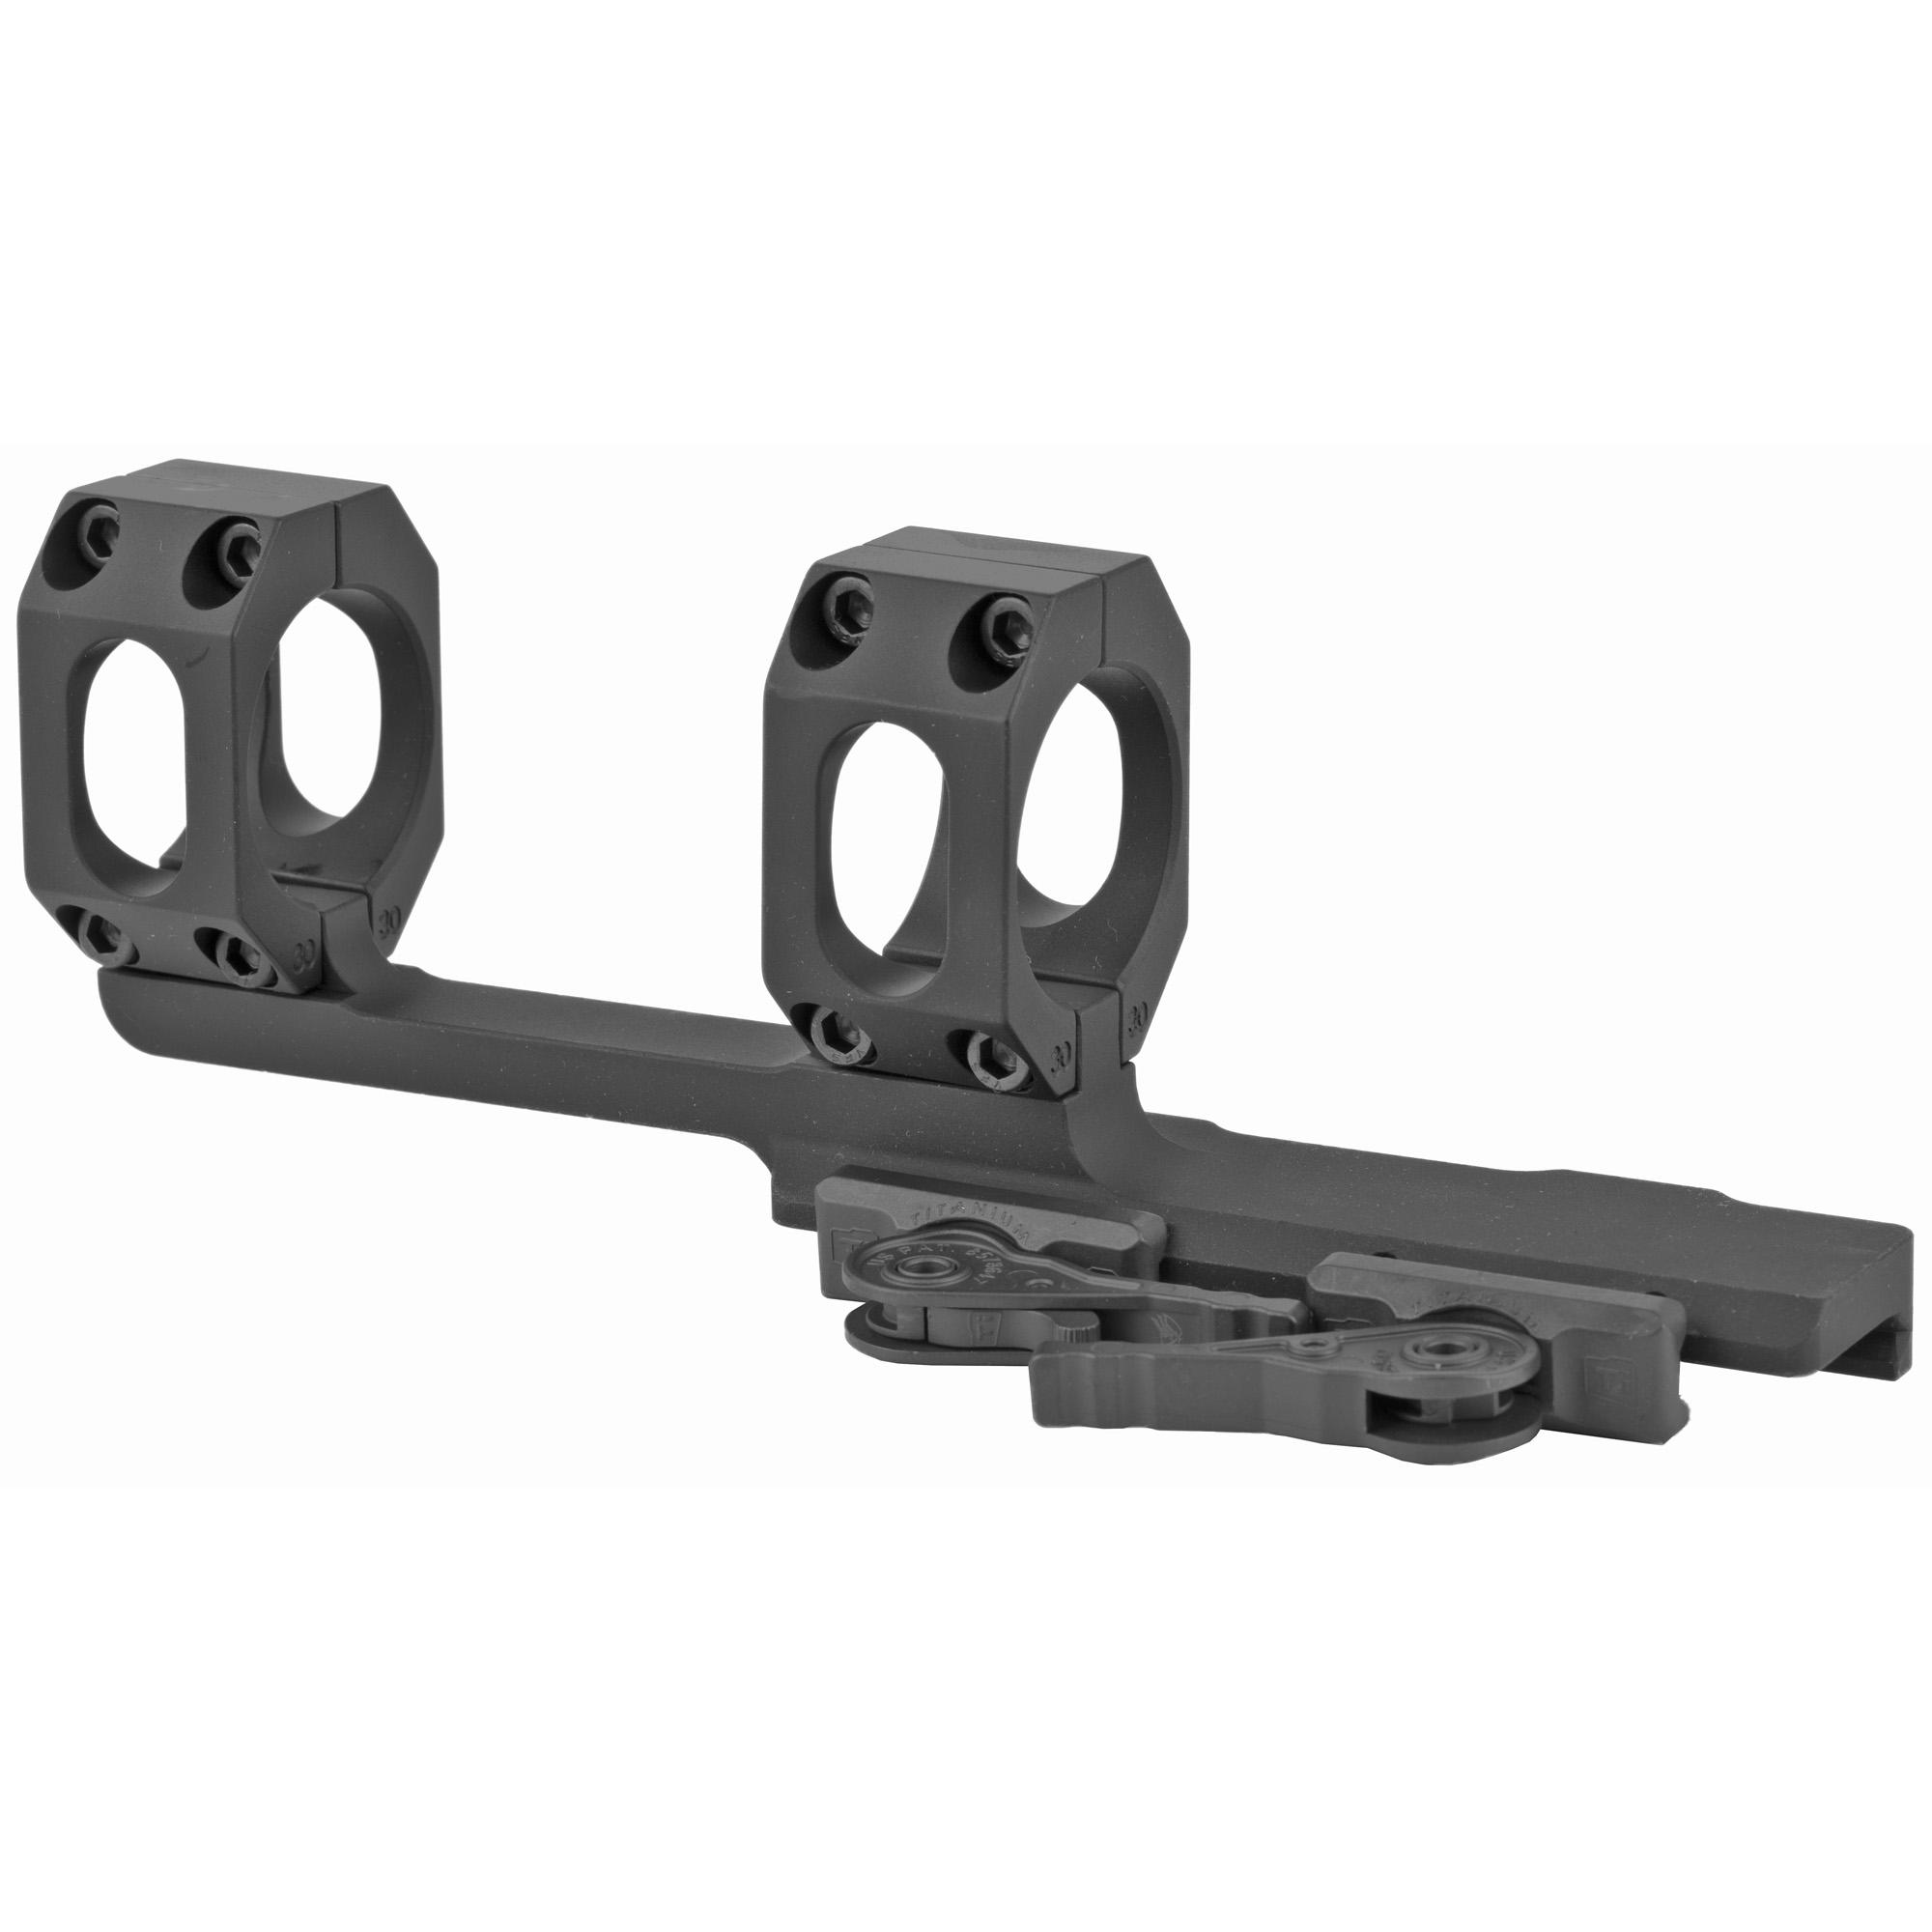 American Defense Mfg. American Defense Mfg. Ad-recon Scp Mount 30mm Black Ti